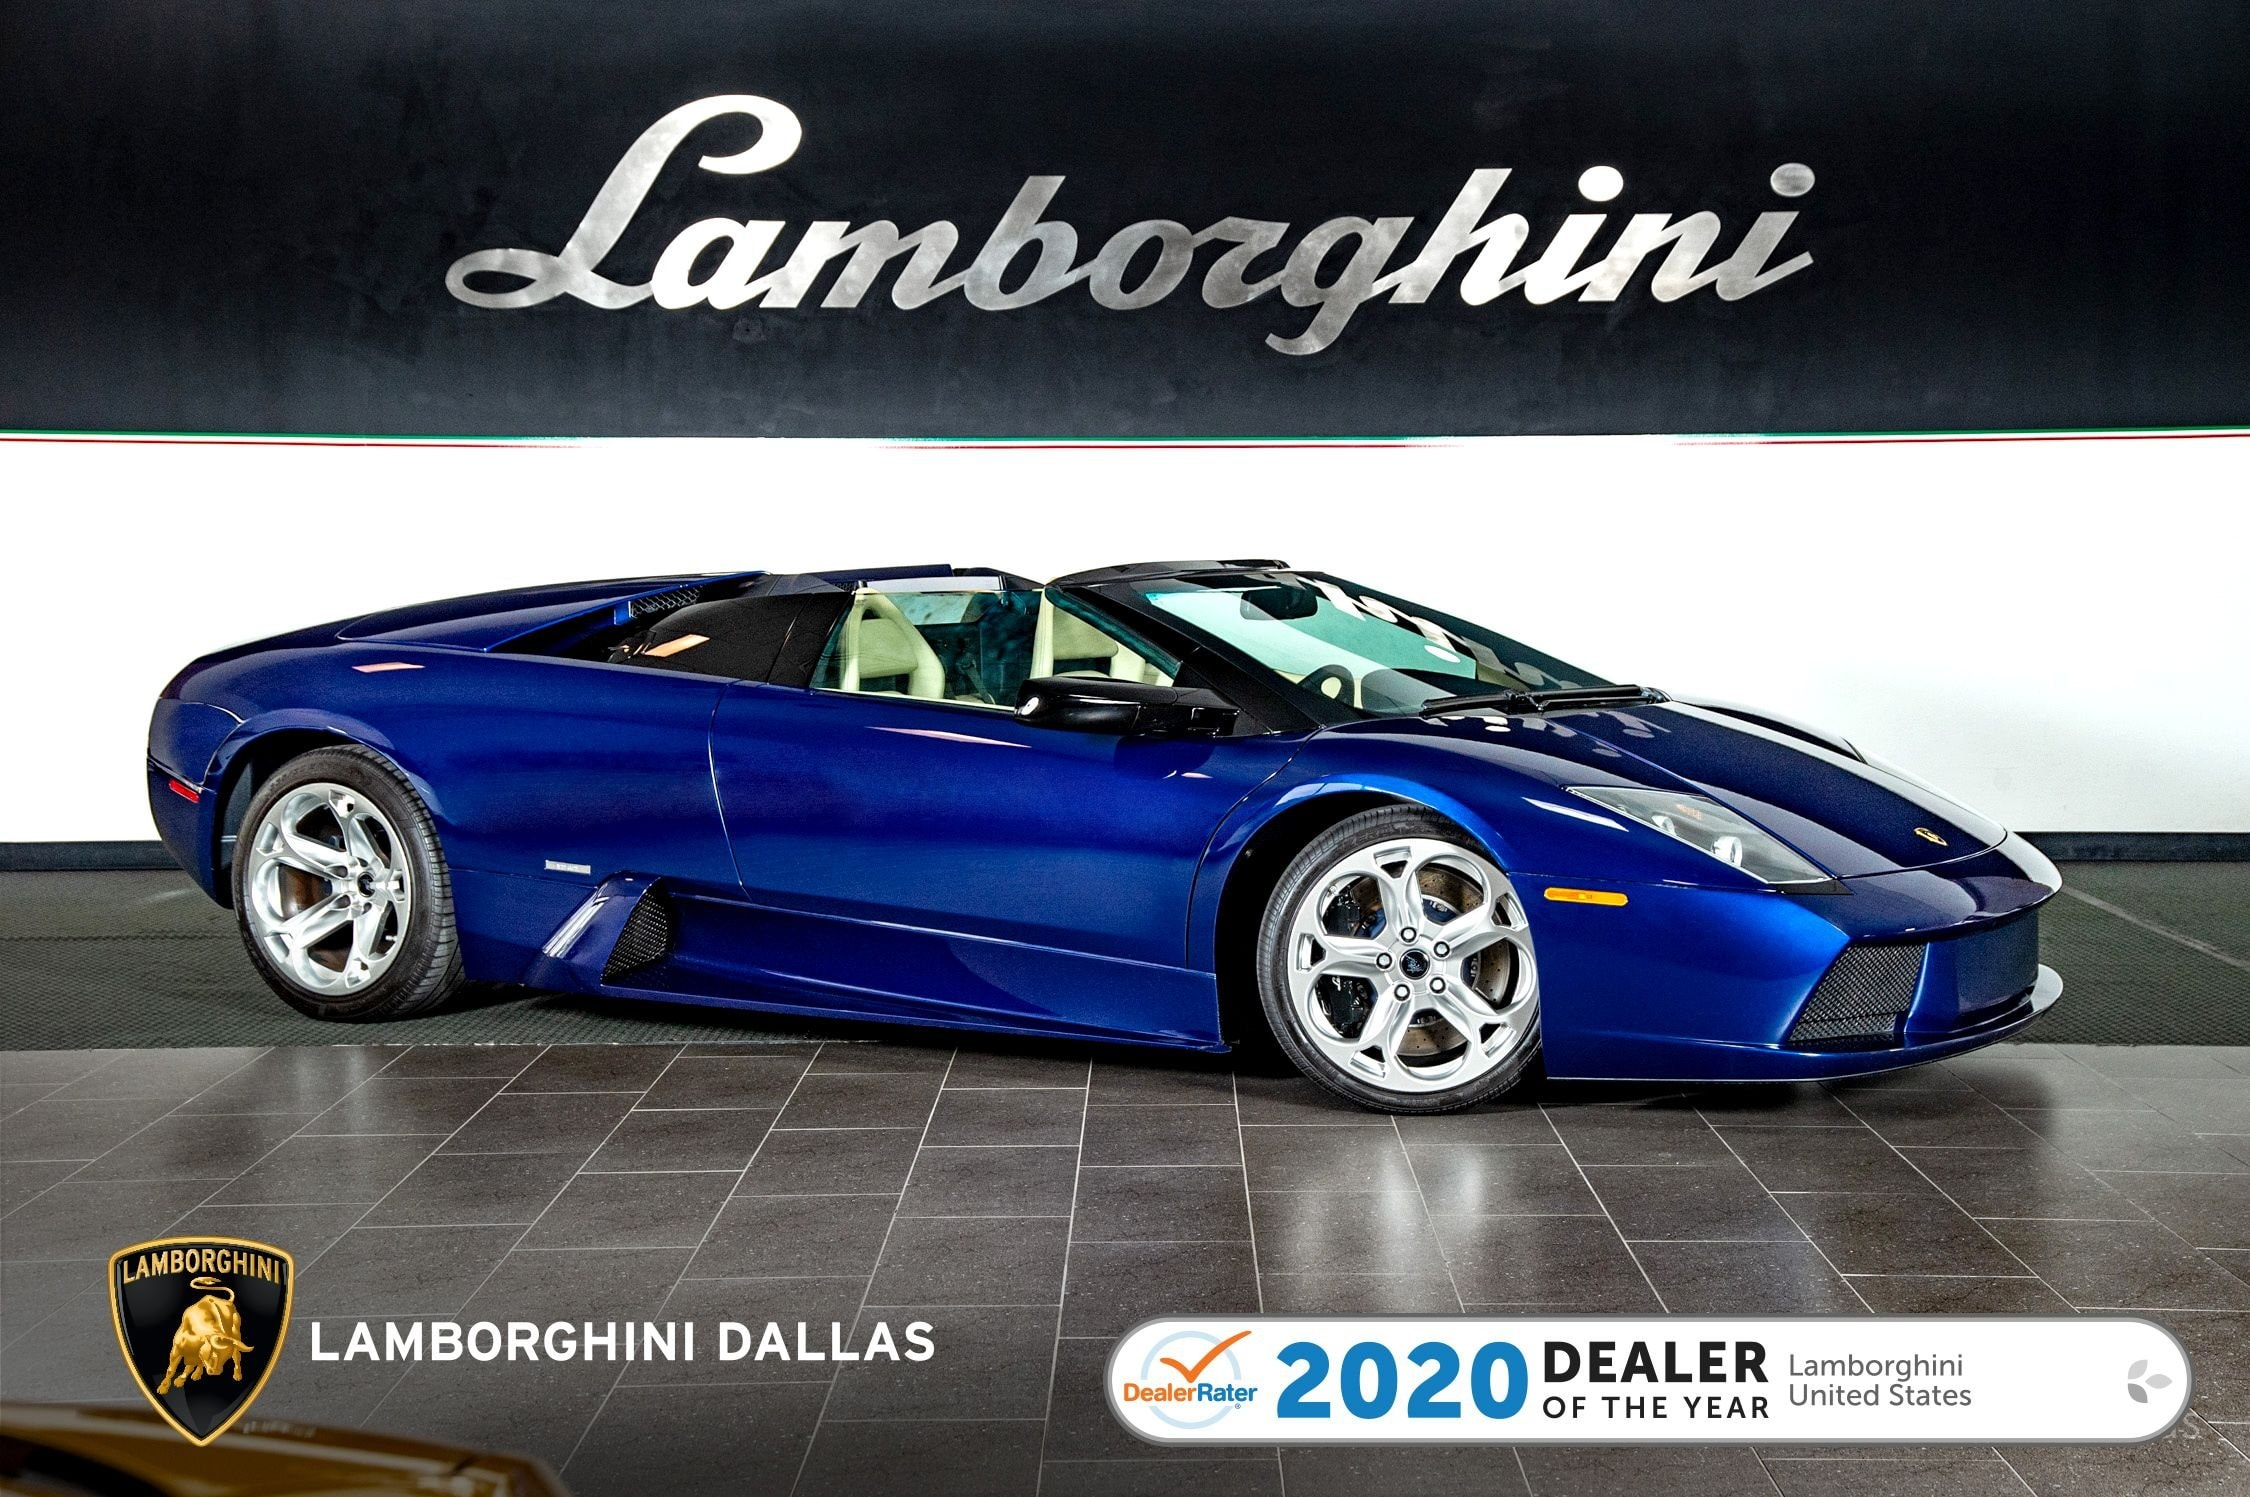 used 2006 Lamborghini Murcielago Roadster car, priced at $174,999